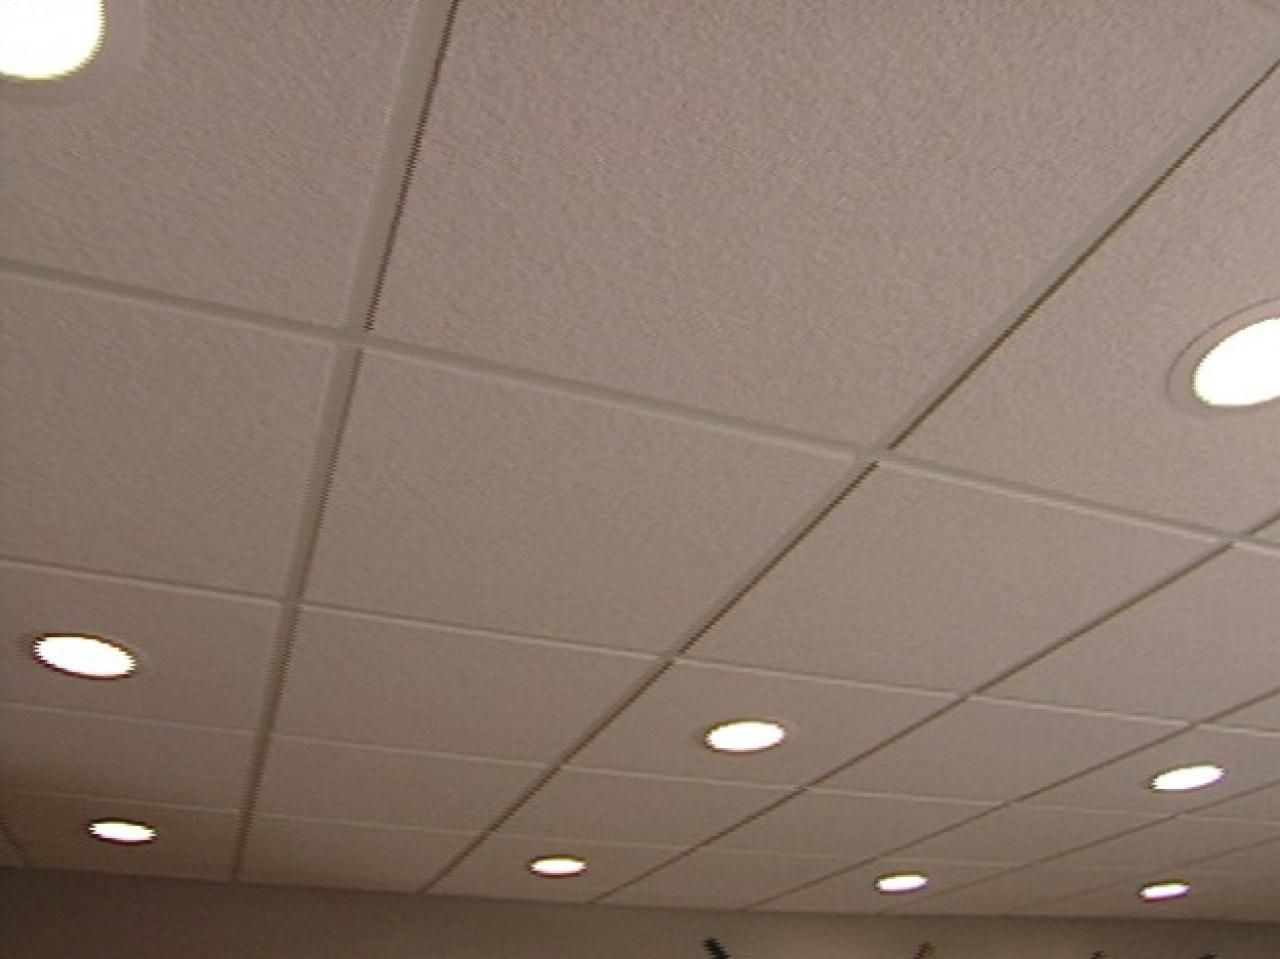 Lighting options for drop down ceilings http led recessed lighting drop ceiling one of the the truly advantages of led lights is it is not just available to builders of boats that are new dailygadgetfo Choice Image